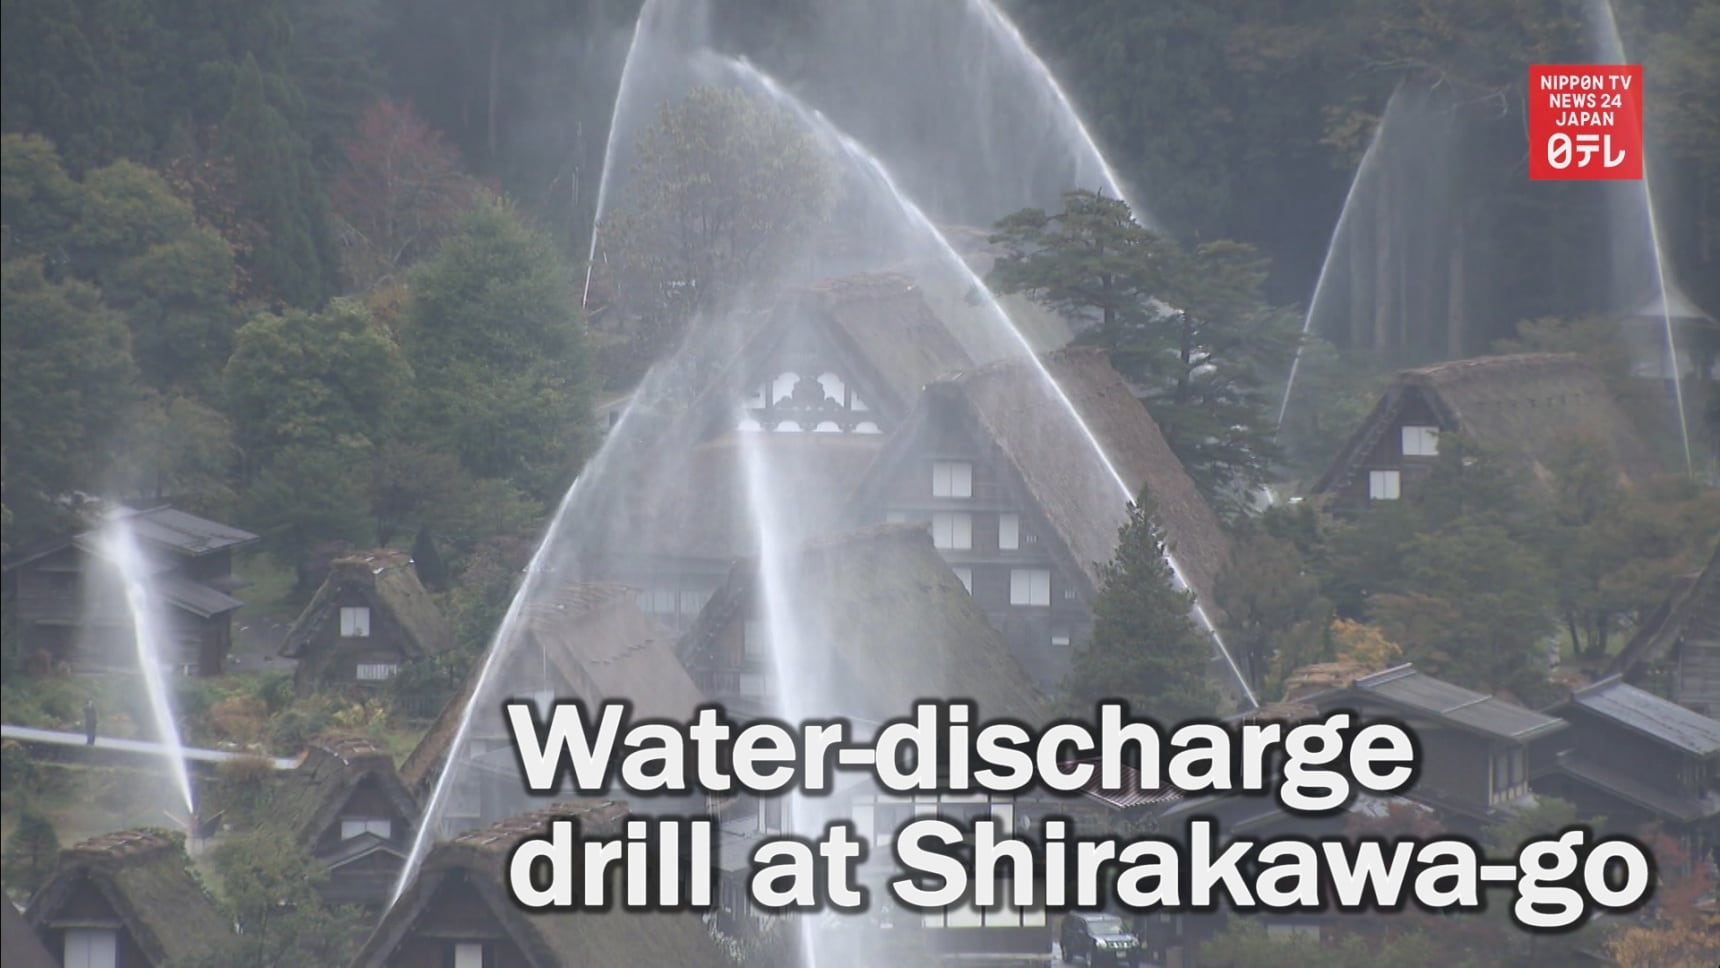 Discharge Drill at Shirakawago Making Waves